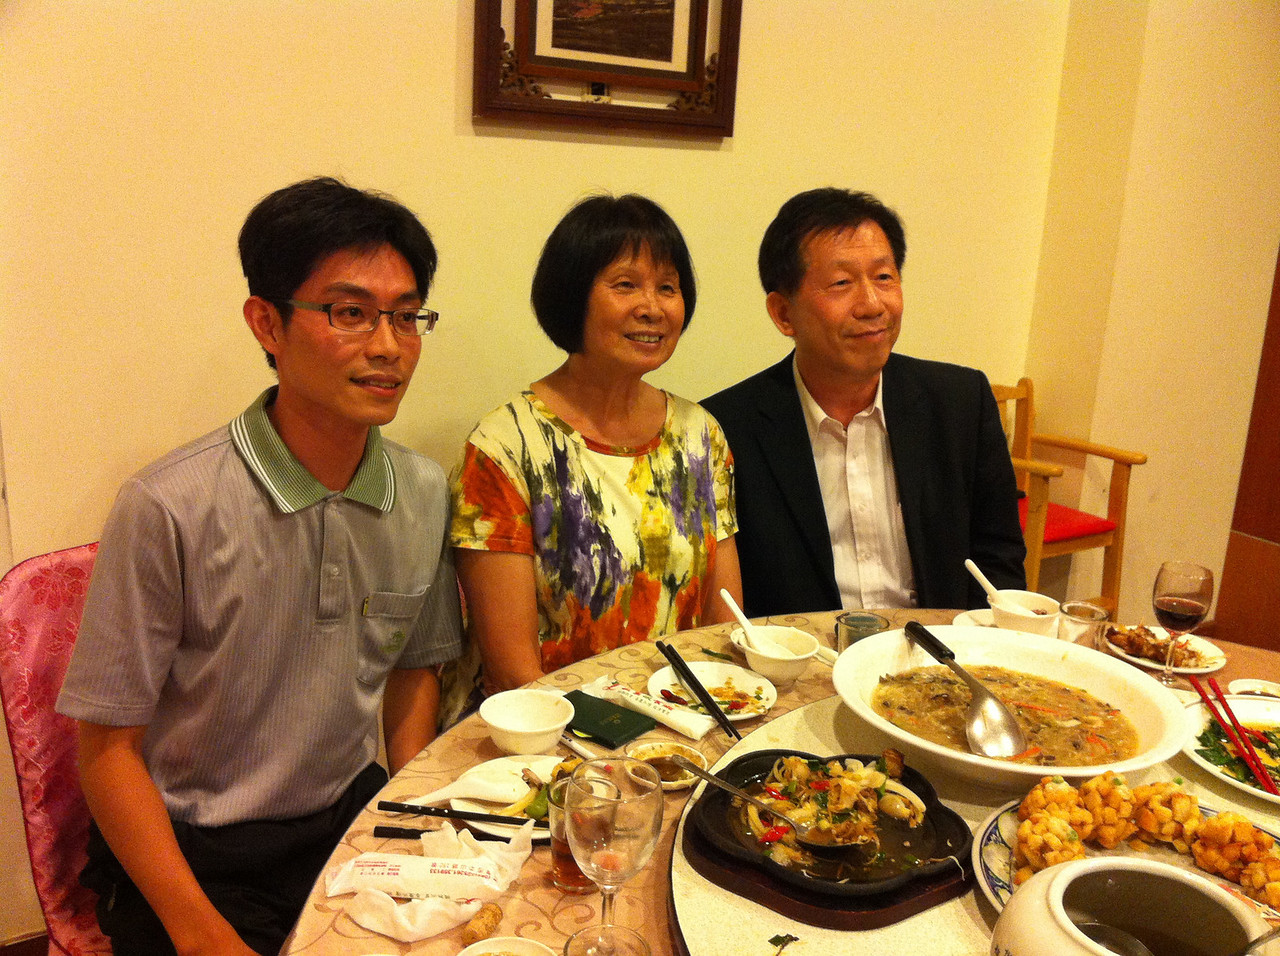 this young man from TaiTung DOE with Chi, and Mr. Tsai